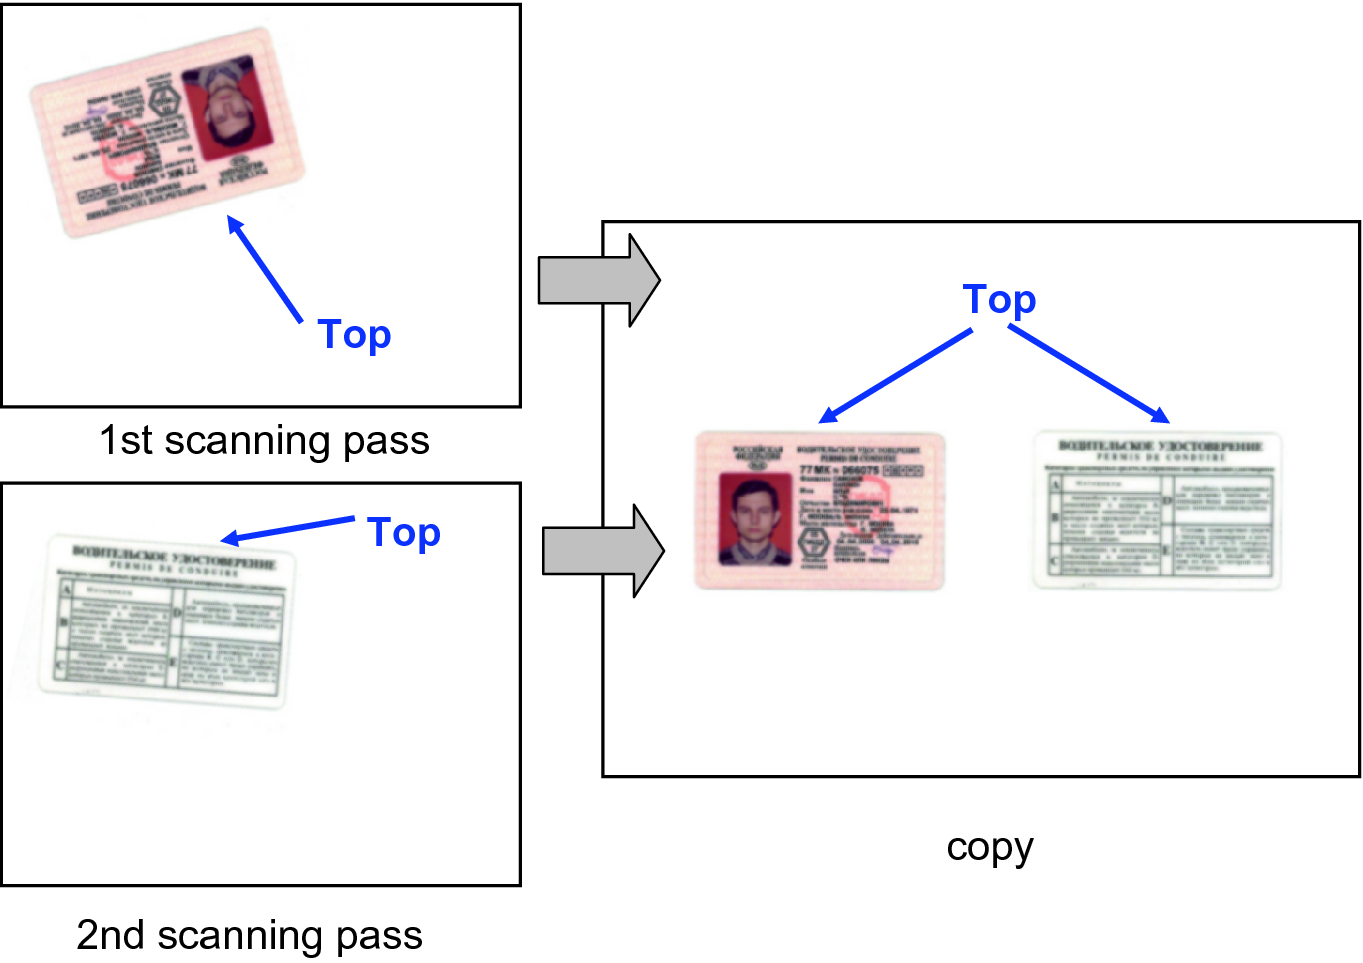 Memory-Efficient Algorithm for Copying Two-Sided Cards